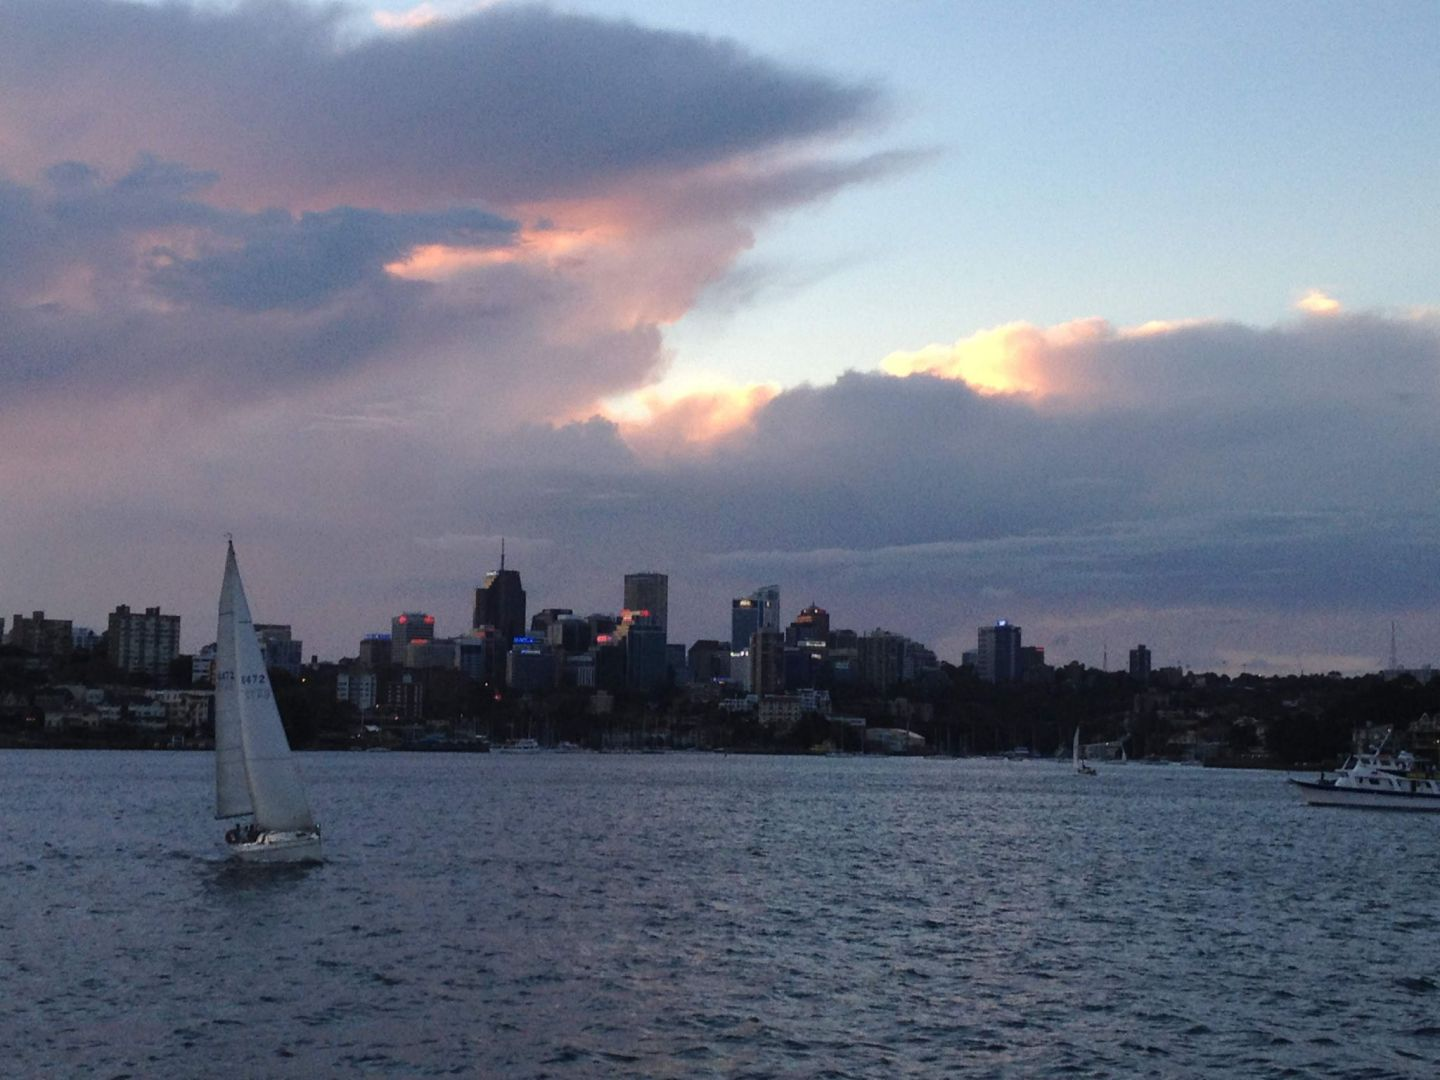 A sunset from the Manly Ferry